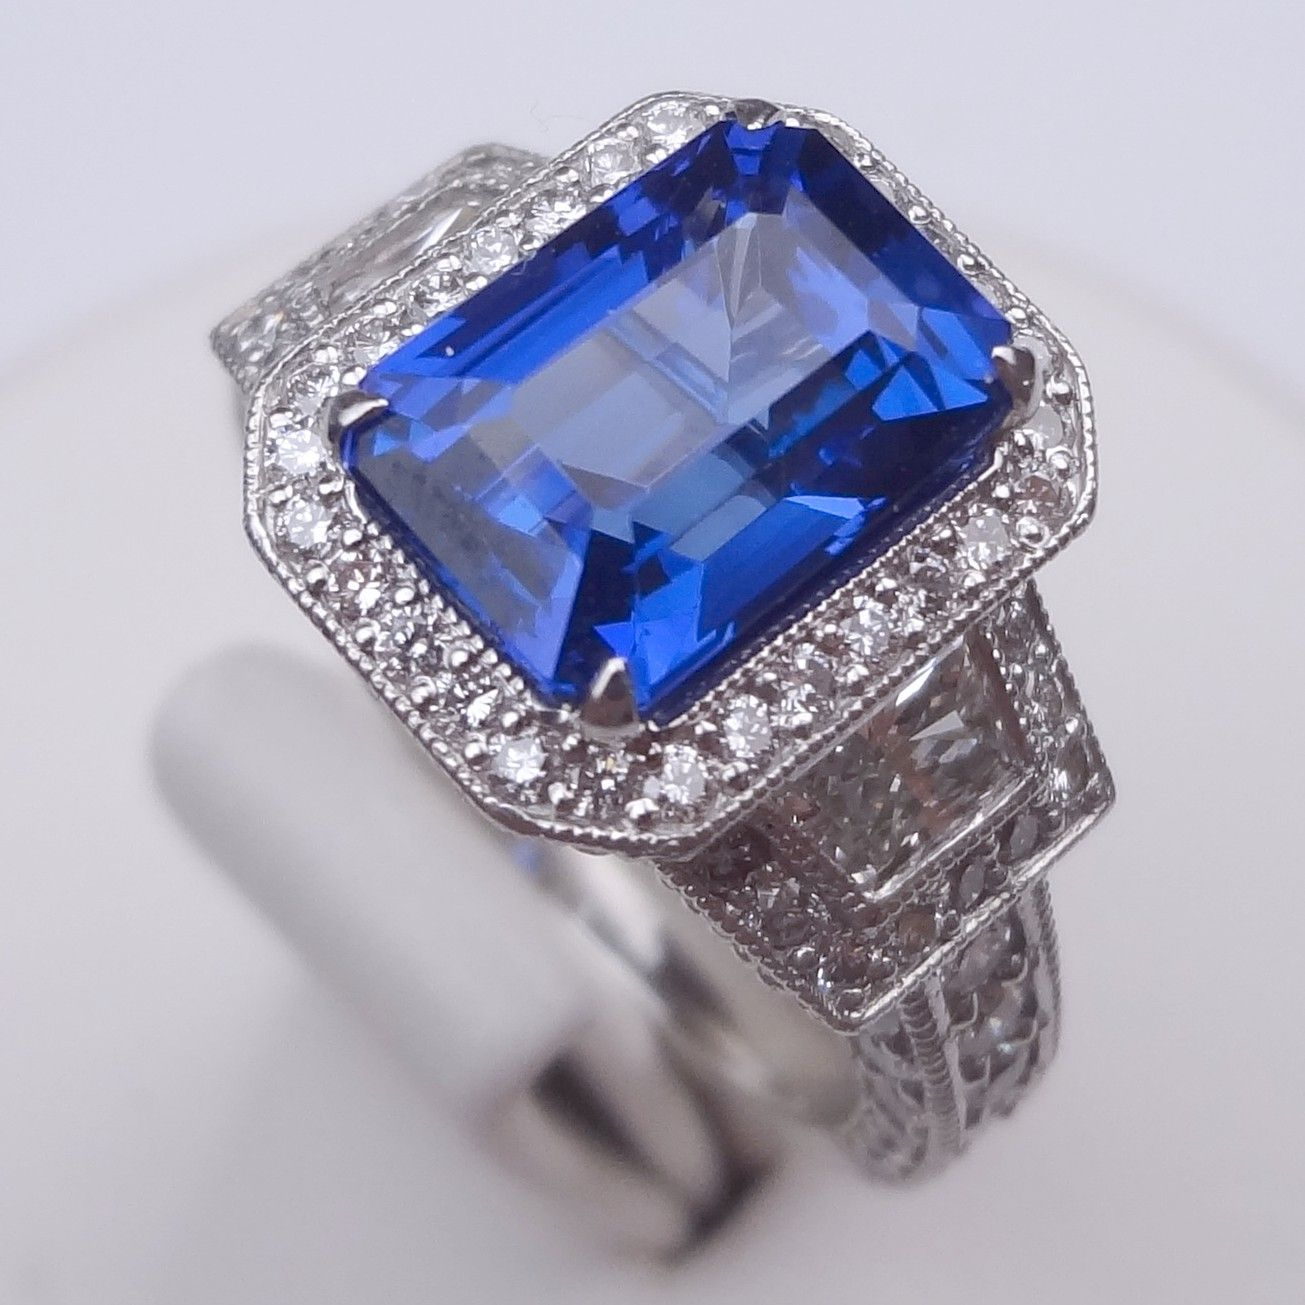 Antique Tanzanite ring